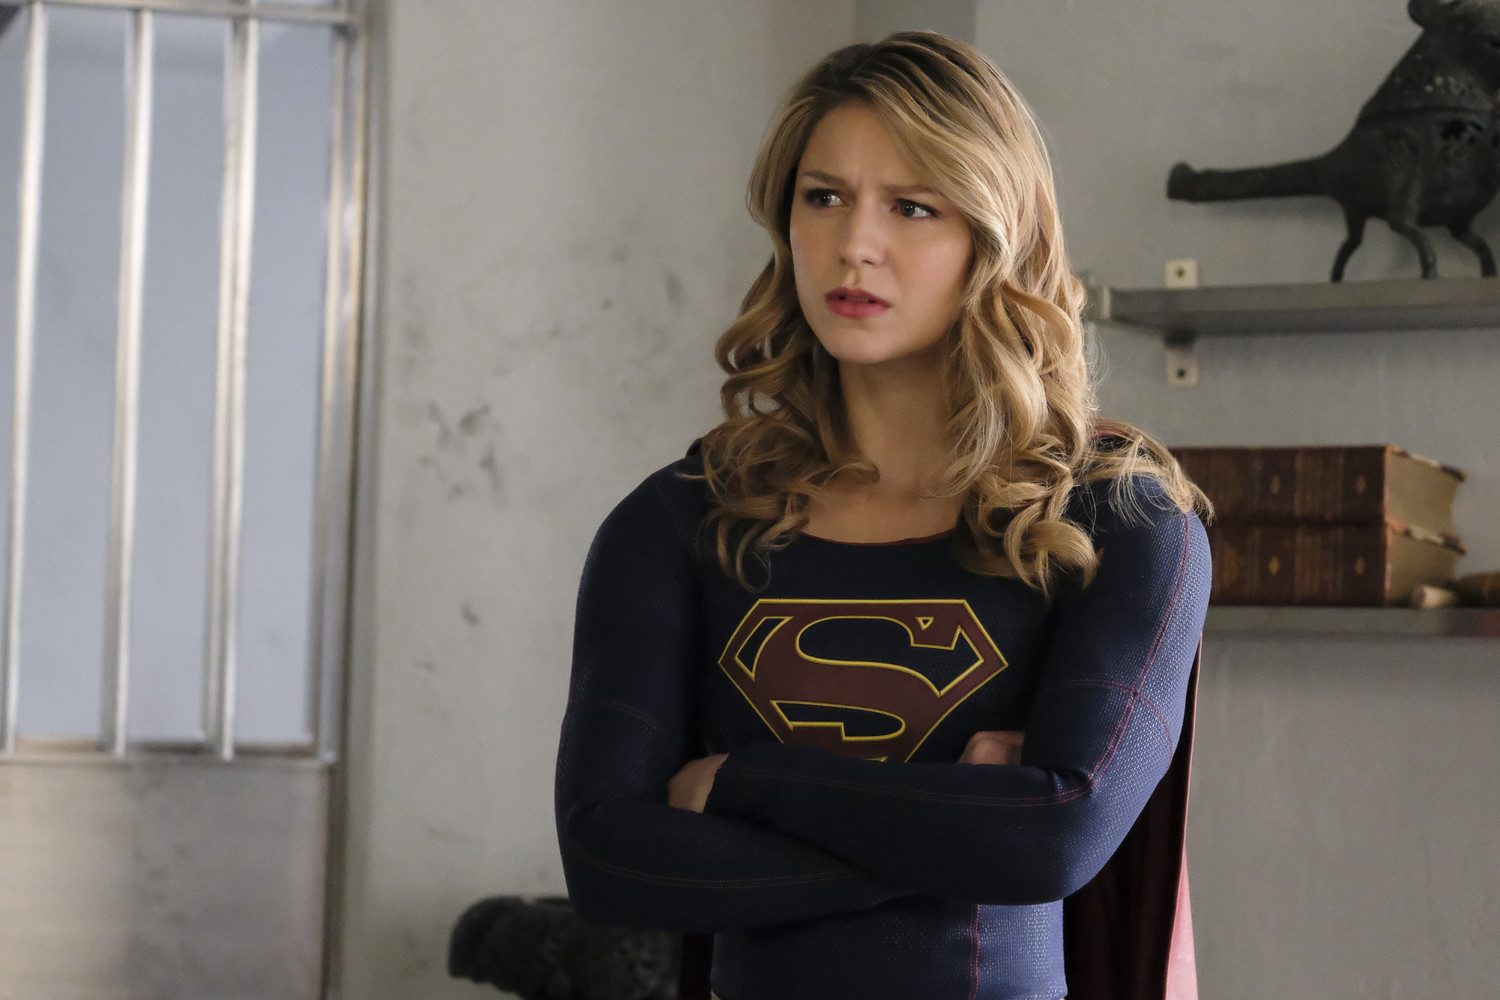 BWW Recap: Kara Learns That Her Pen is Mightier Than Her Cape on SUPERGIRL